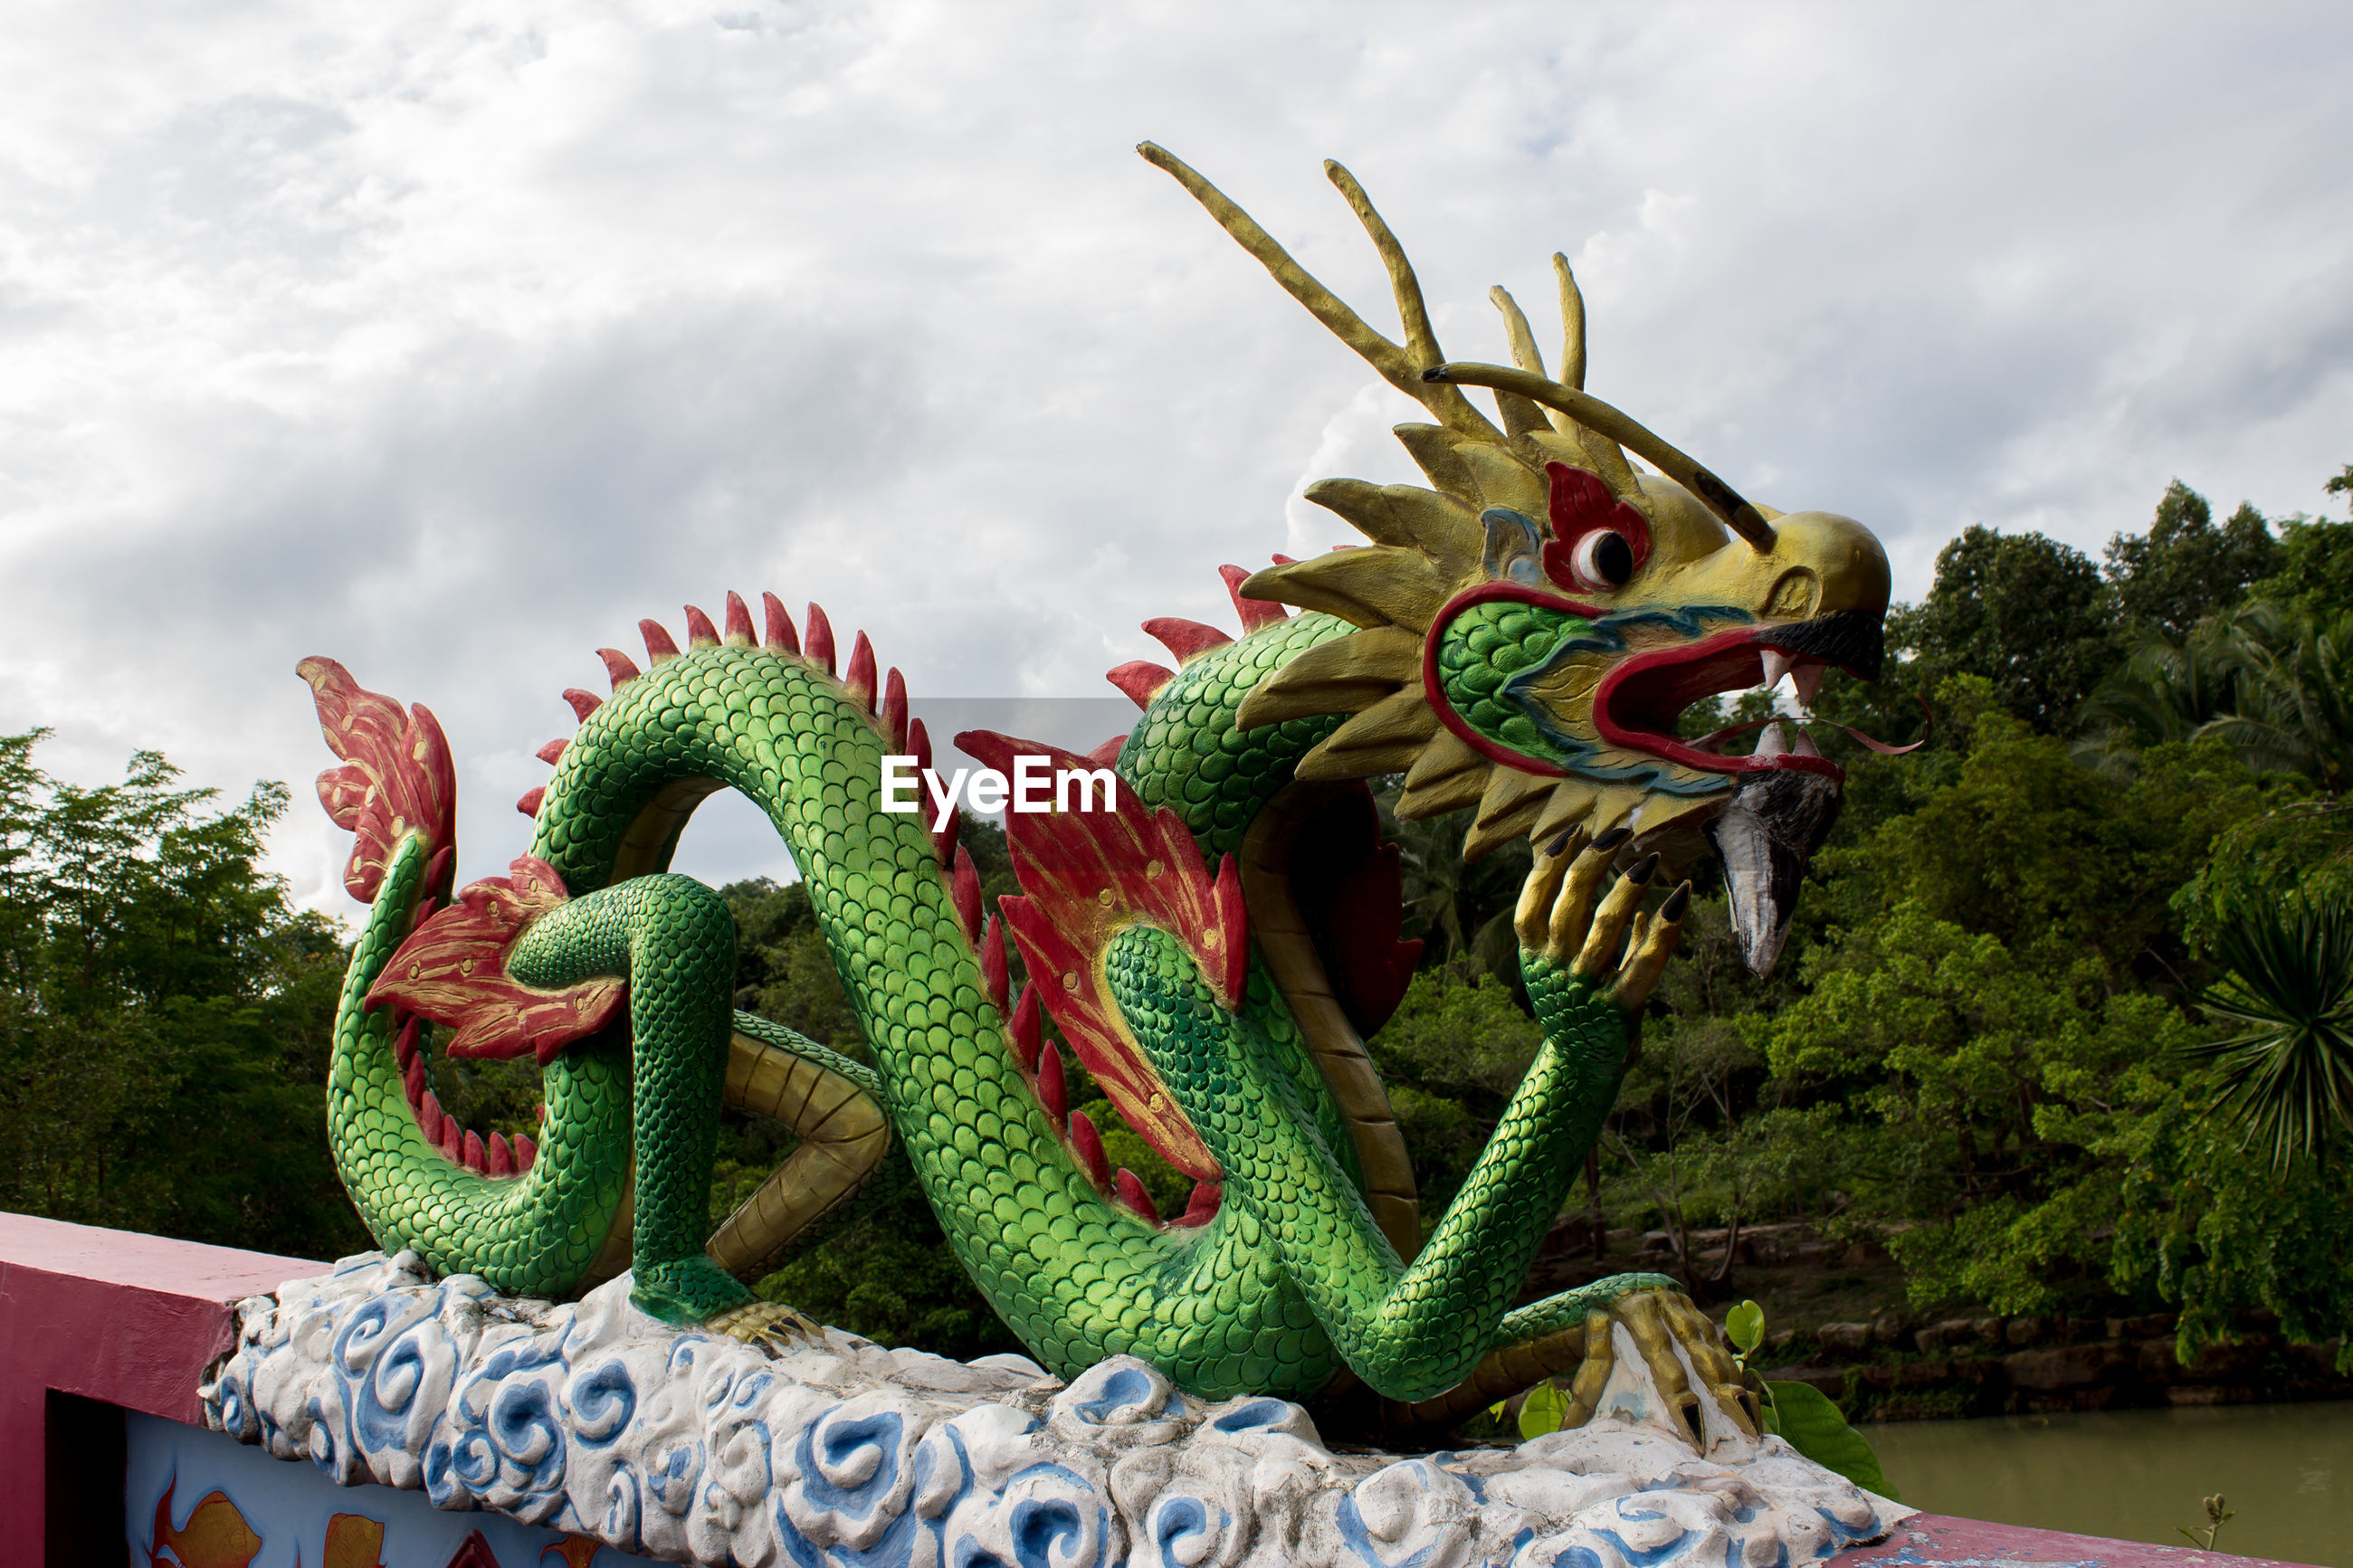 CLOSE-UP OF DRAGON STATUE AGAINST TREES